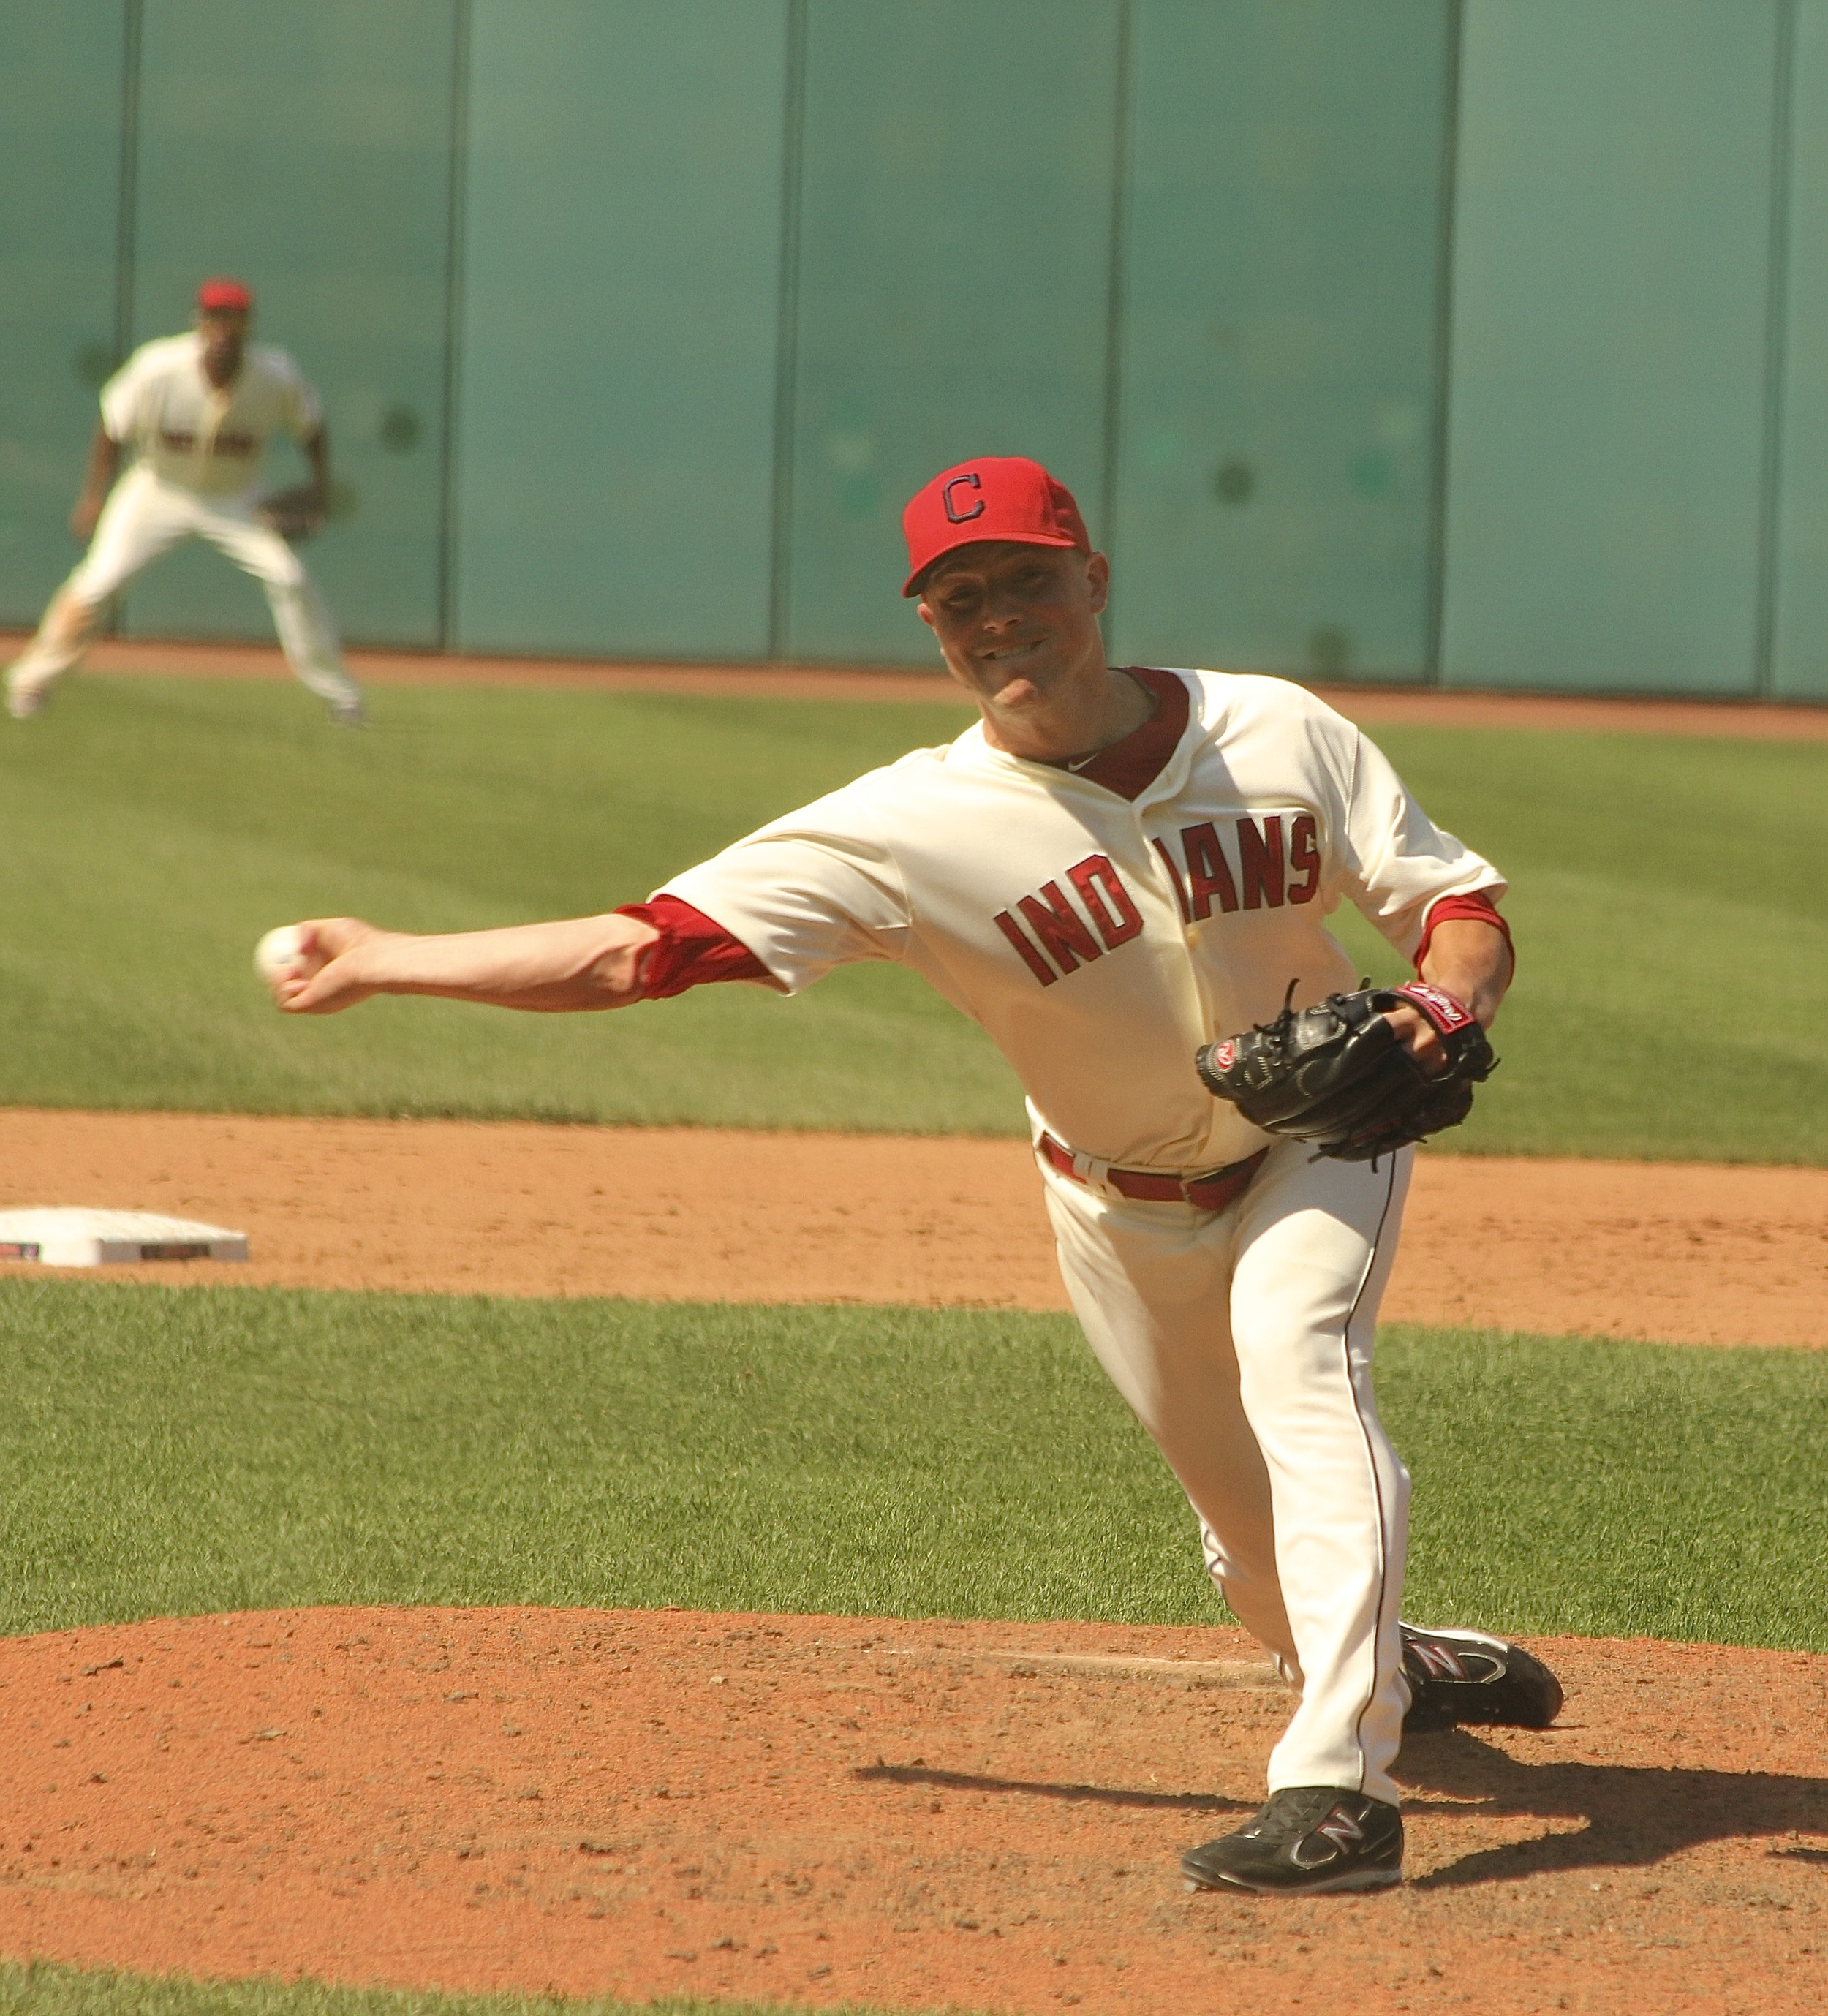 Joe Smith throwing one in